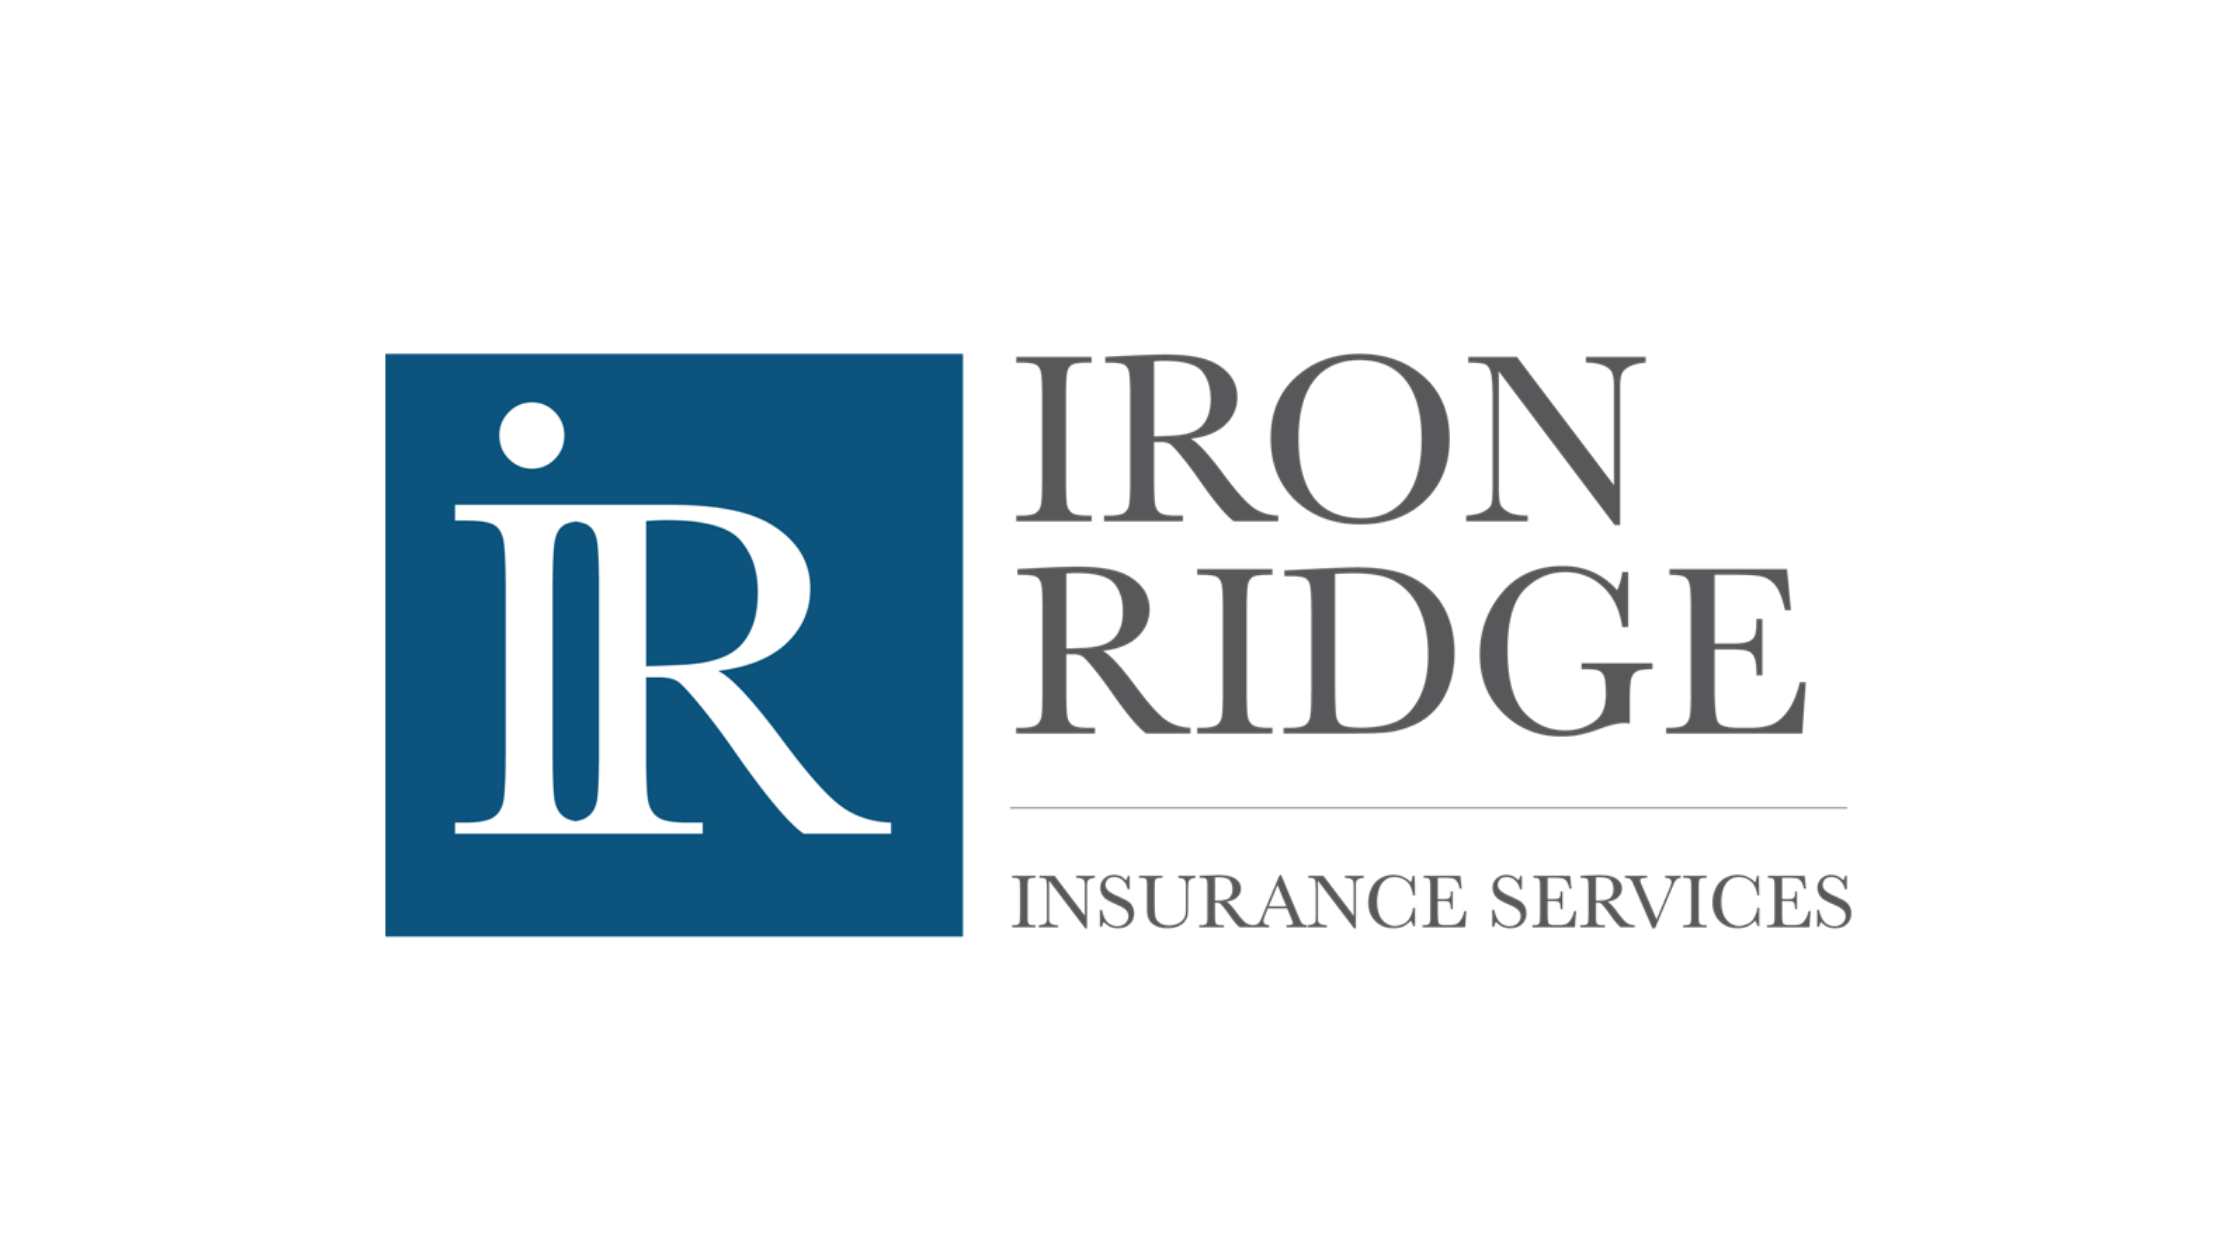 Iron Ridge Insurance Services empowers team to give back